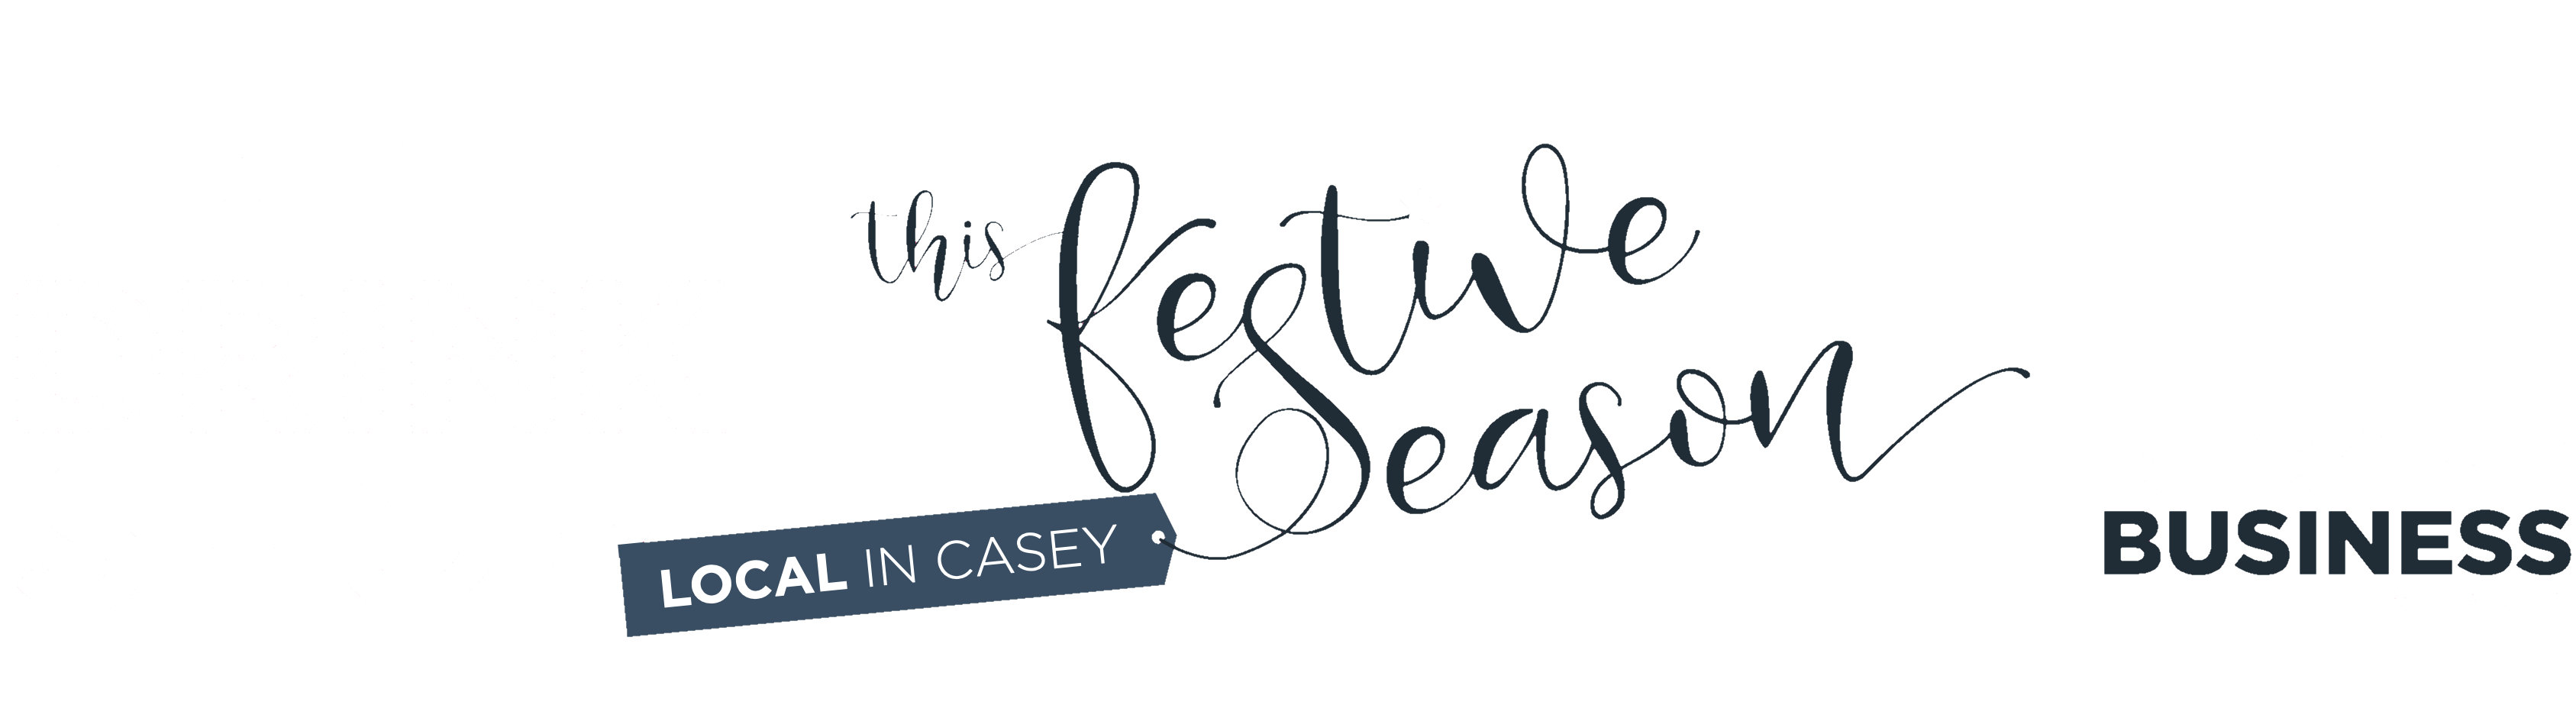 Eat, drink, shop local in Casey this festive season